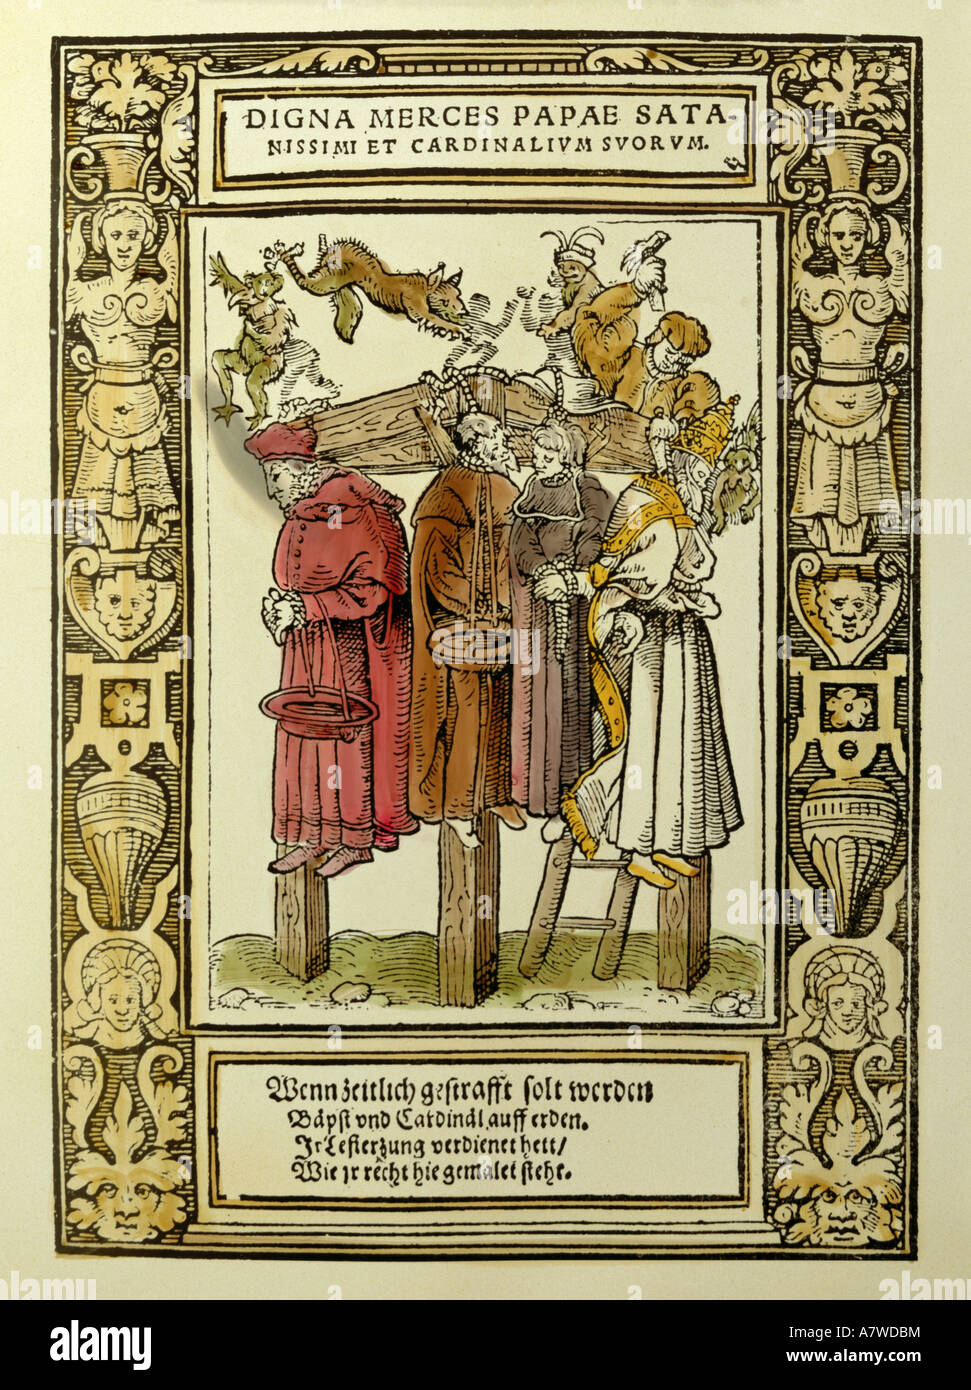 Luther, Martin, 10.11.1483 - 18.2.1546, German reformer, works, 'Against the Papacy at Rome, Founded by the - Stock Image